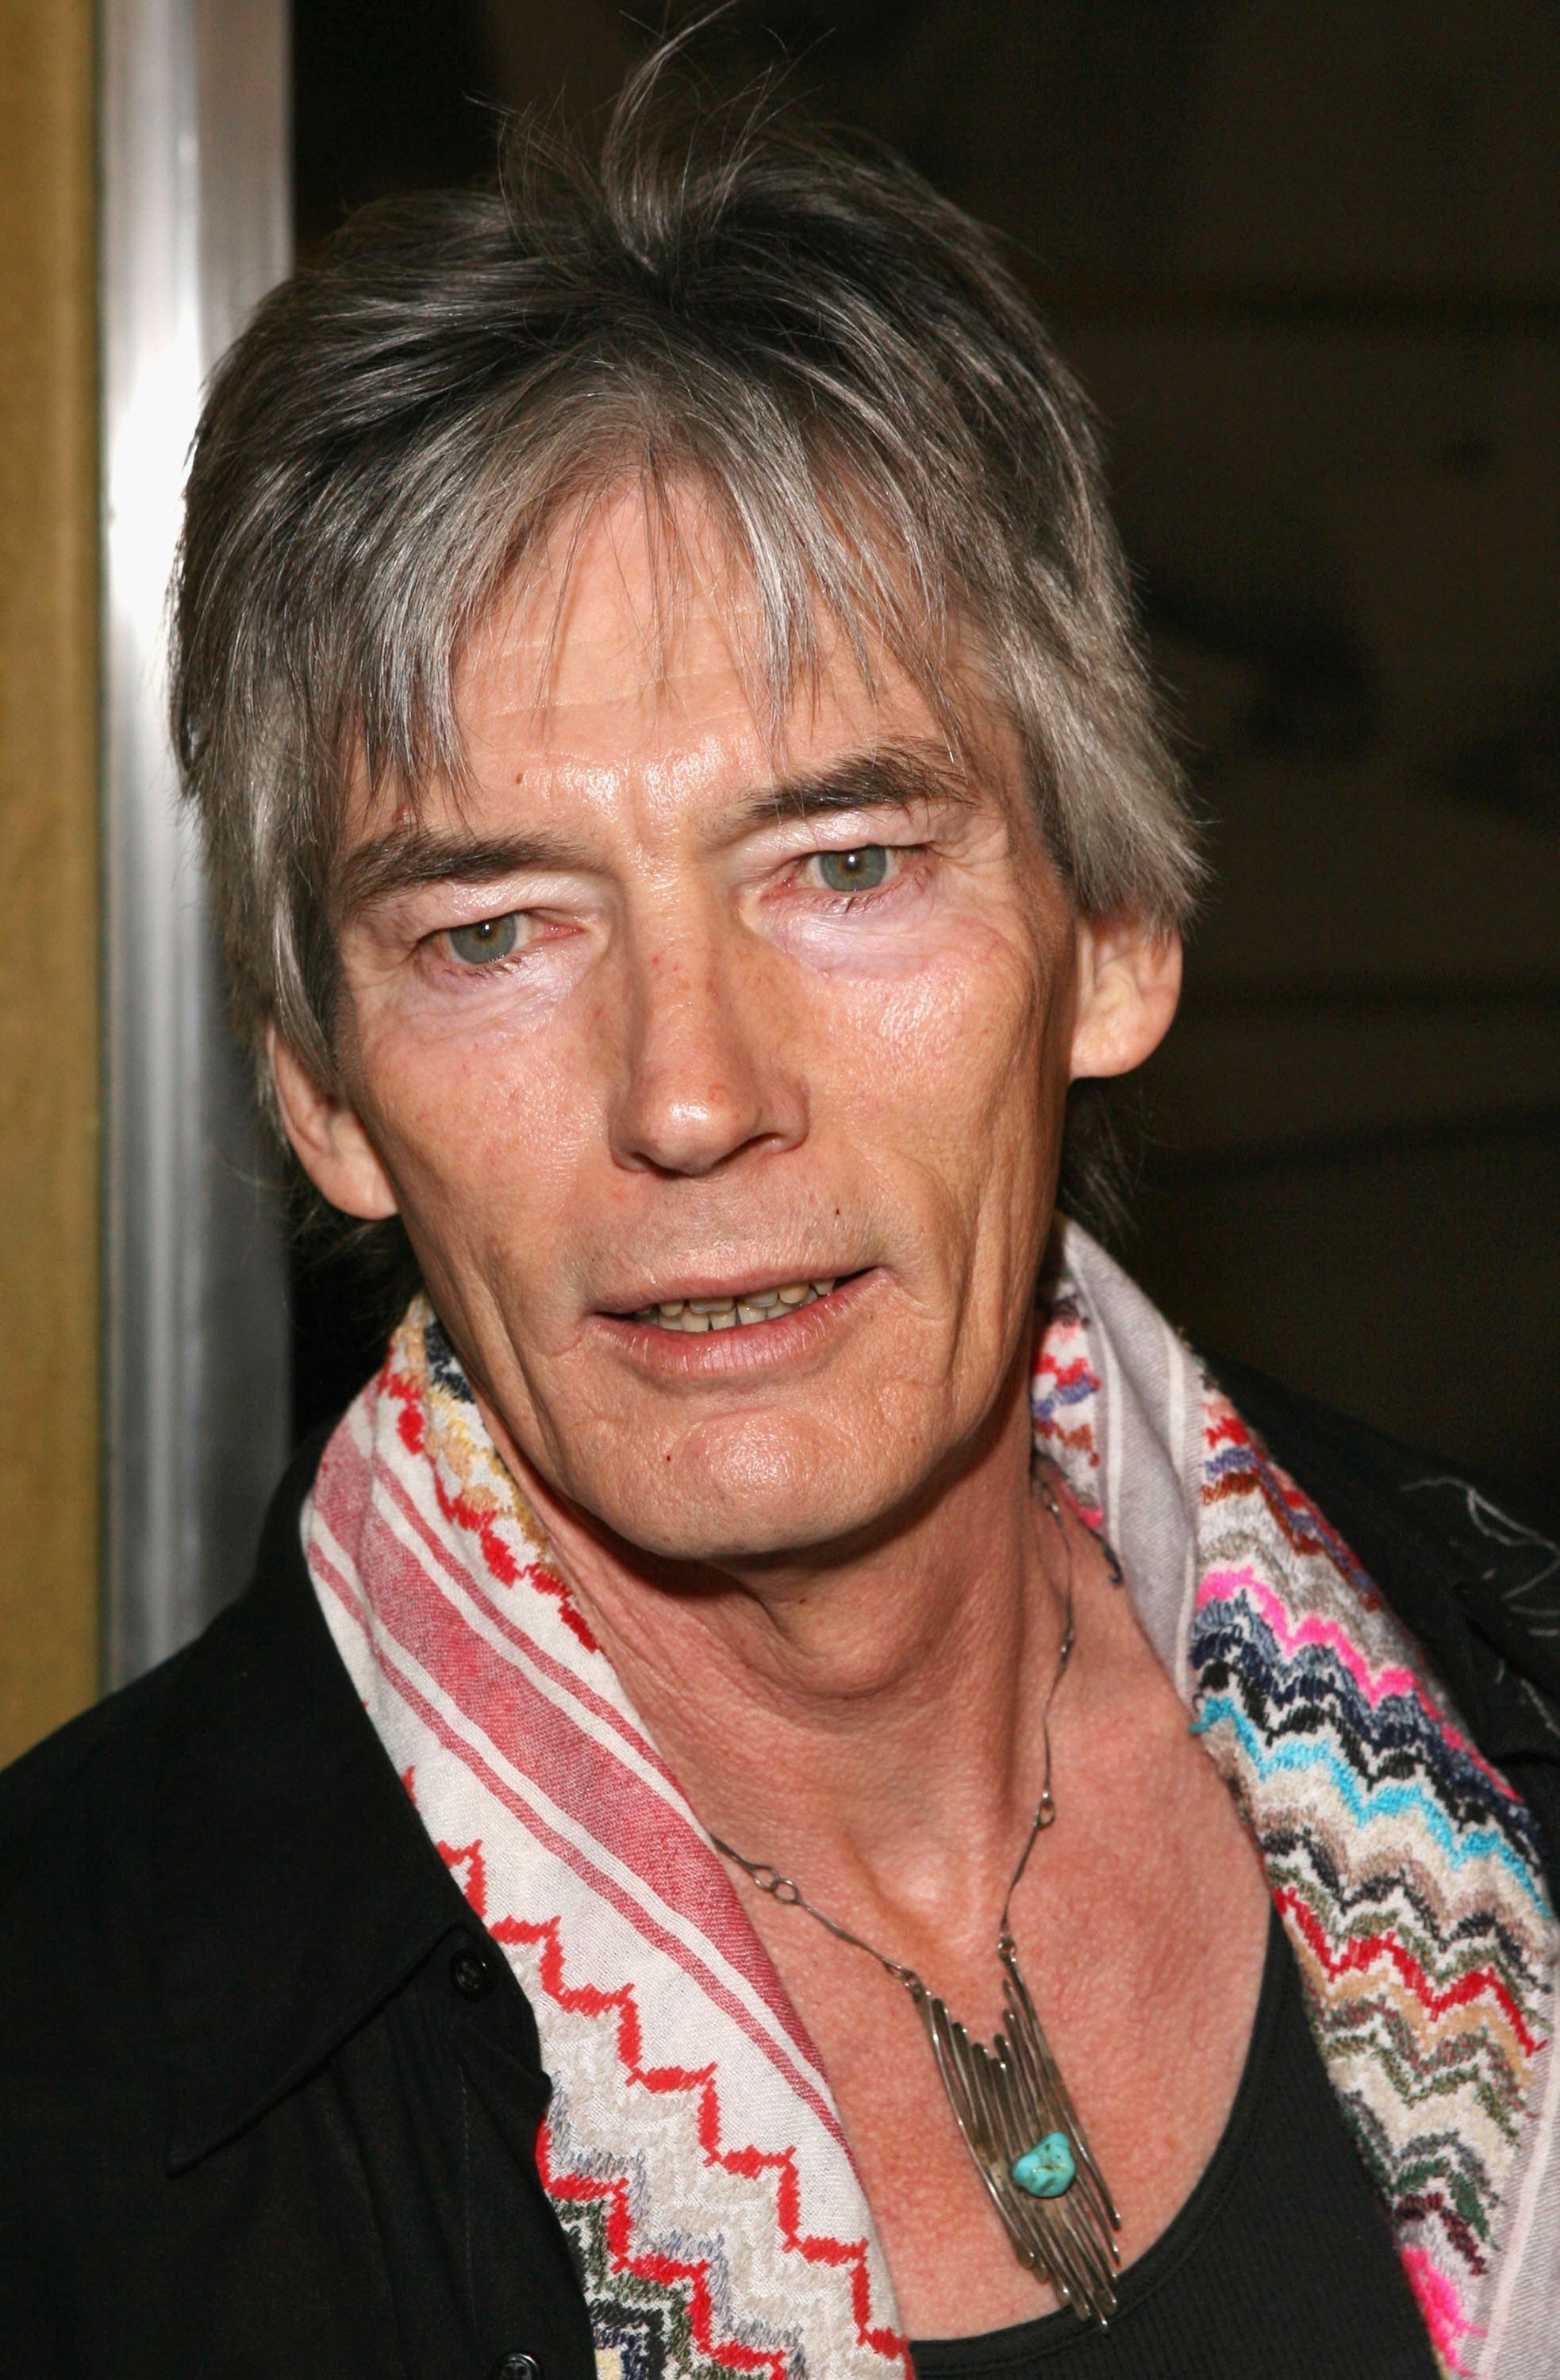 """Actor Billy Drago at the premiere of Fox Searchlight Pictures' """"The Hills Have Eyes"""" in Los Angeles, 2006. Photo: Getty Images/GlobalImagesUkraine"""